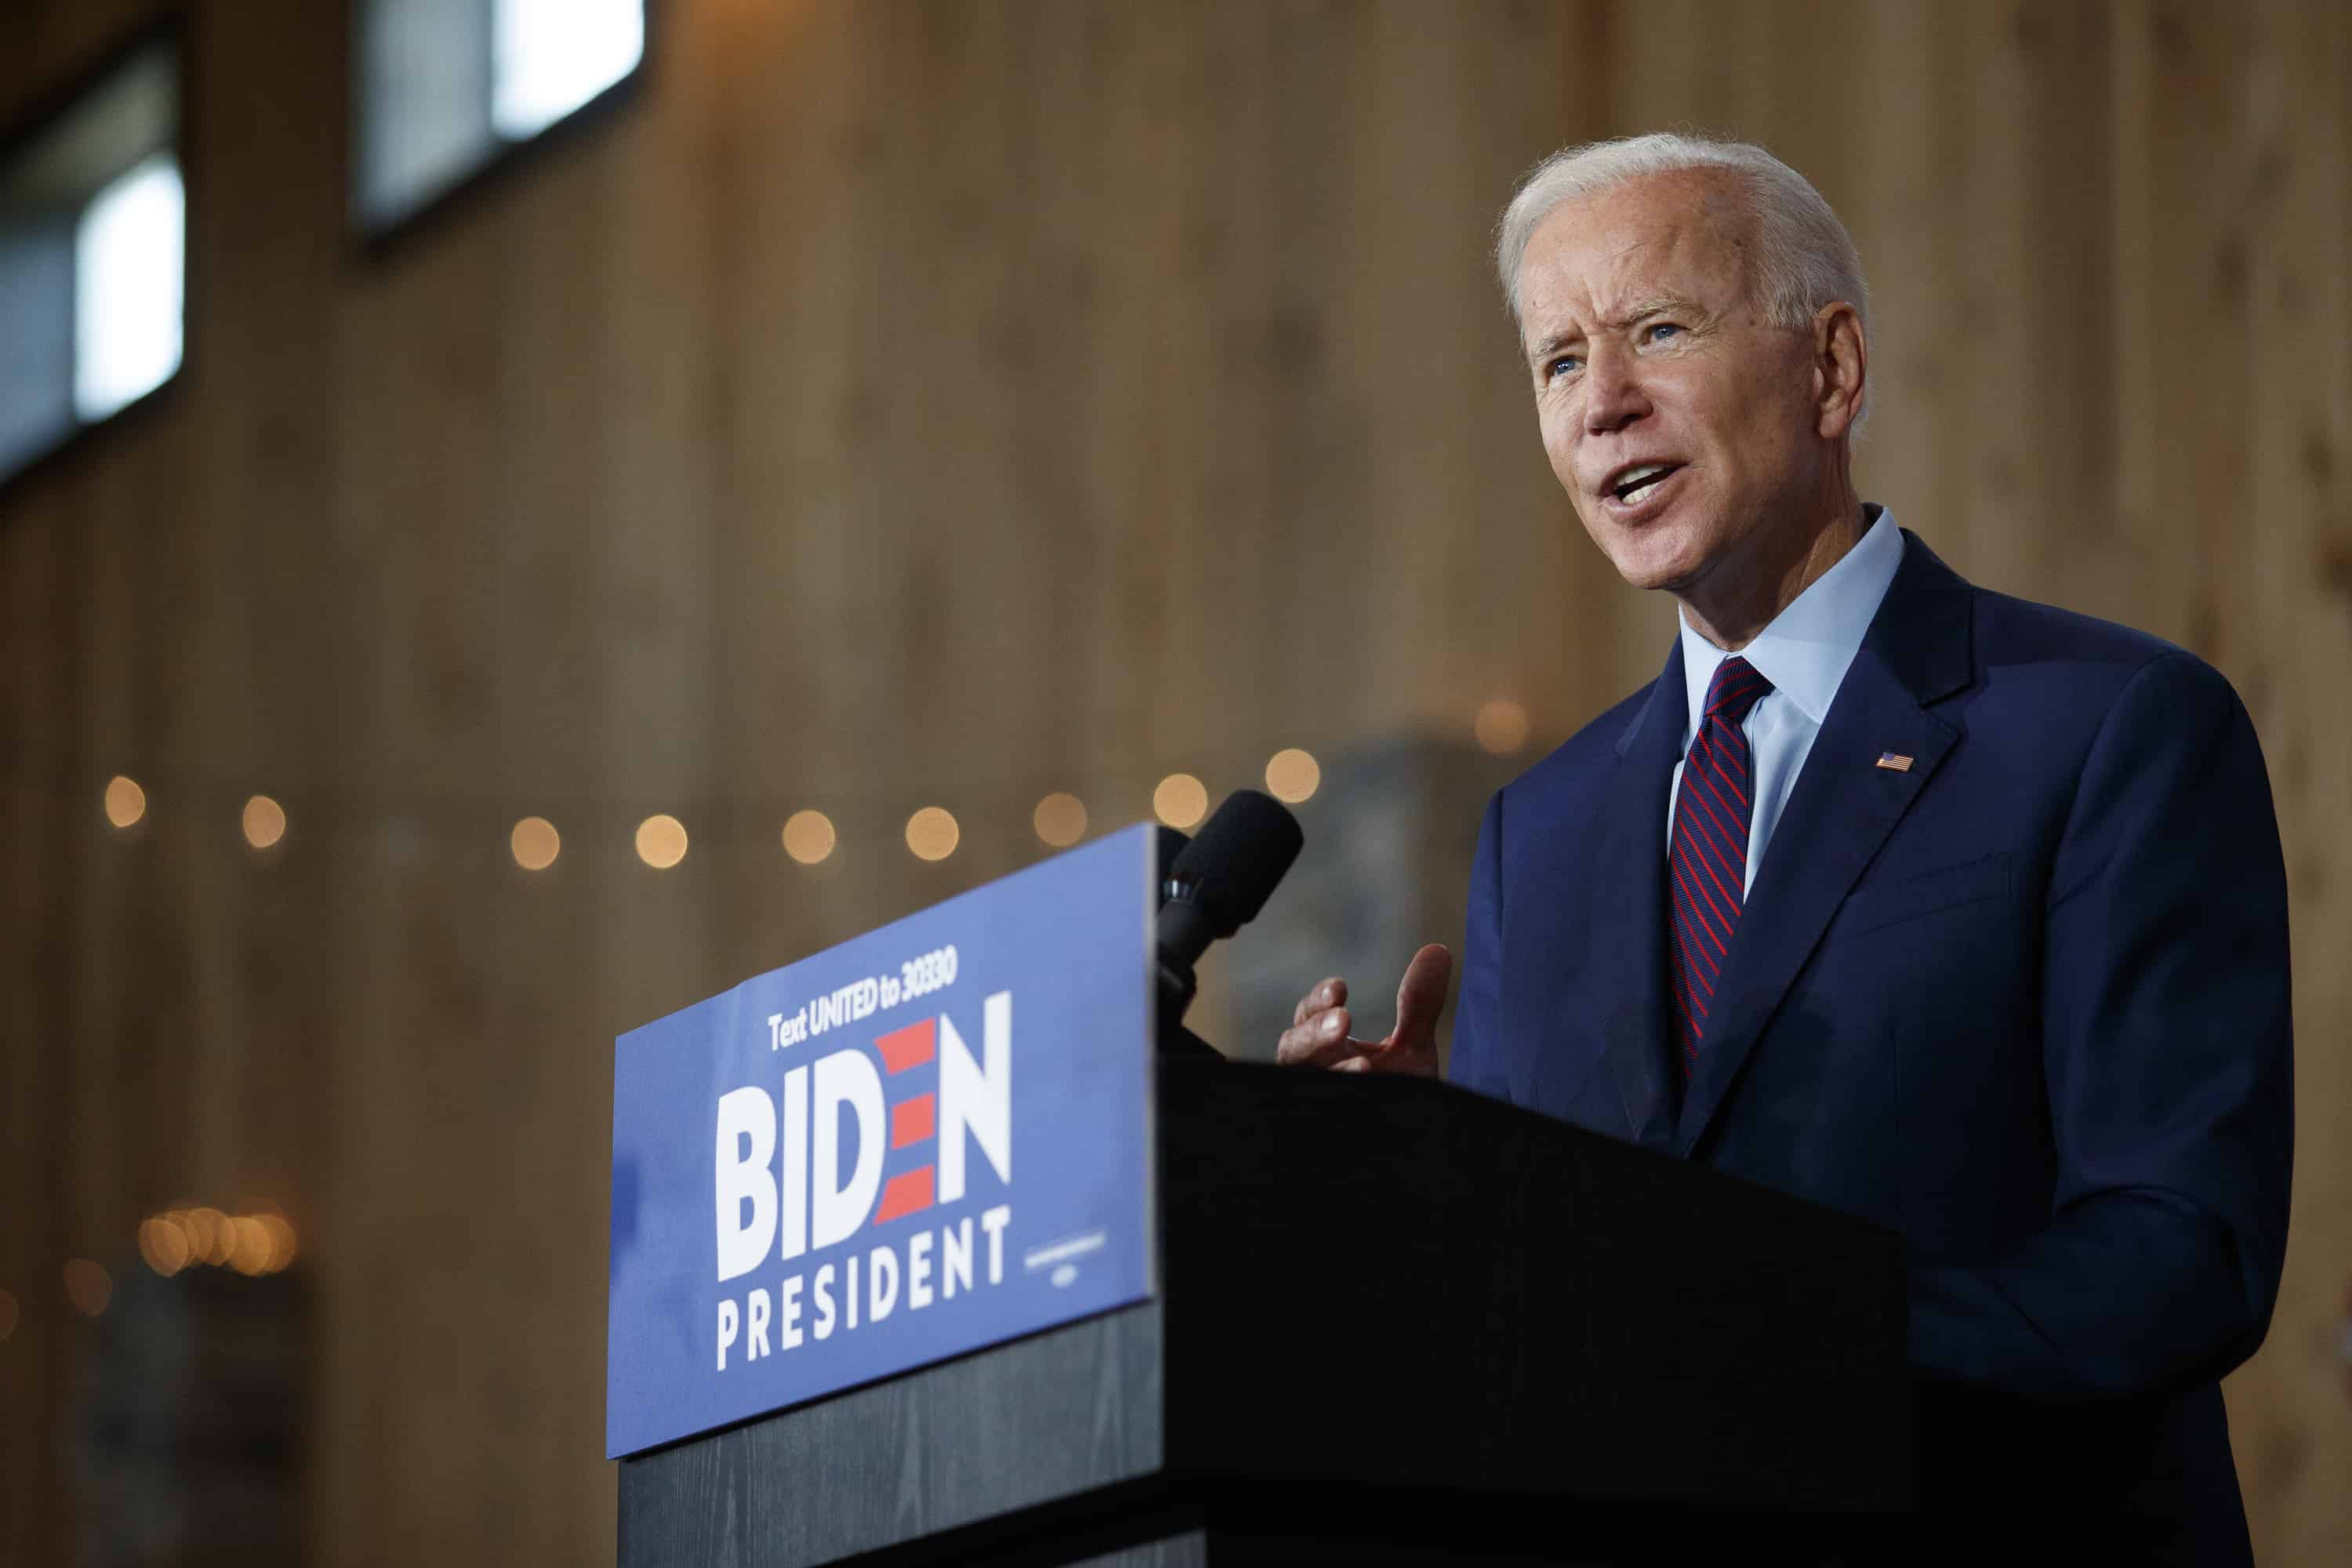 Presidential candidate Joe Biden denied sexually assaulting former Senate aide Tara Reade back in 1993 while she worked in his office.